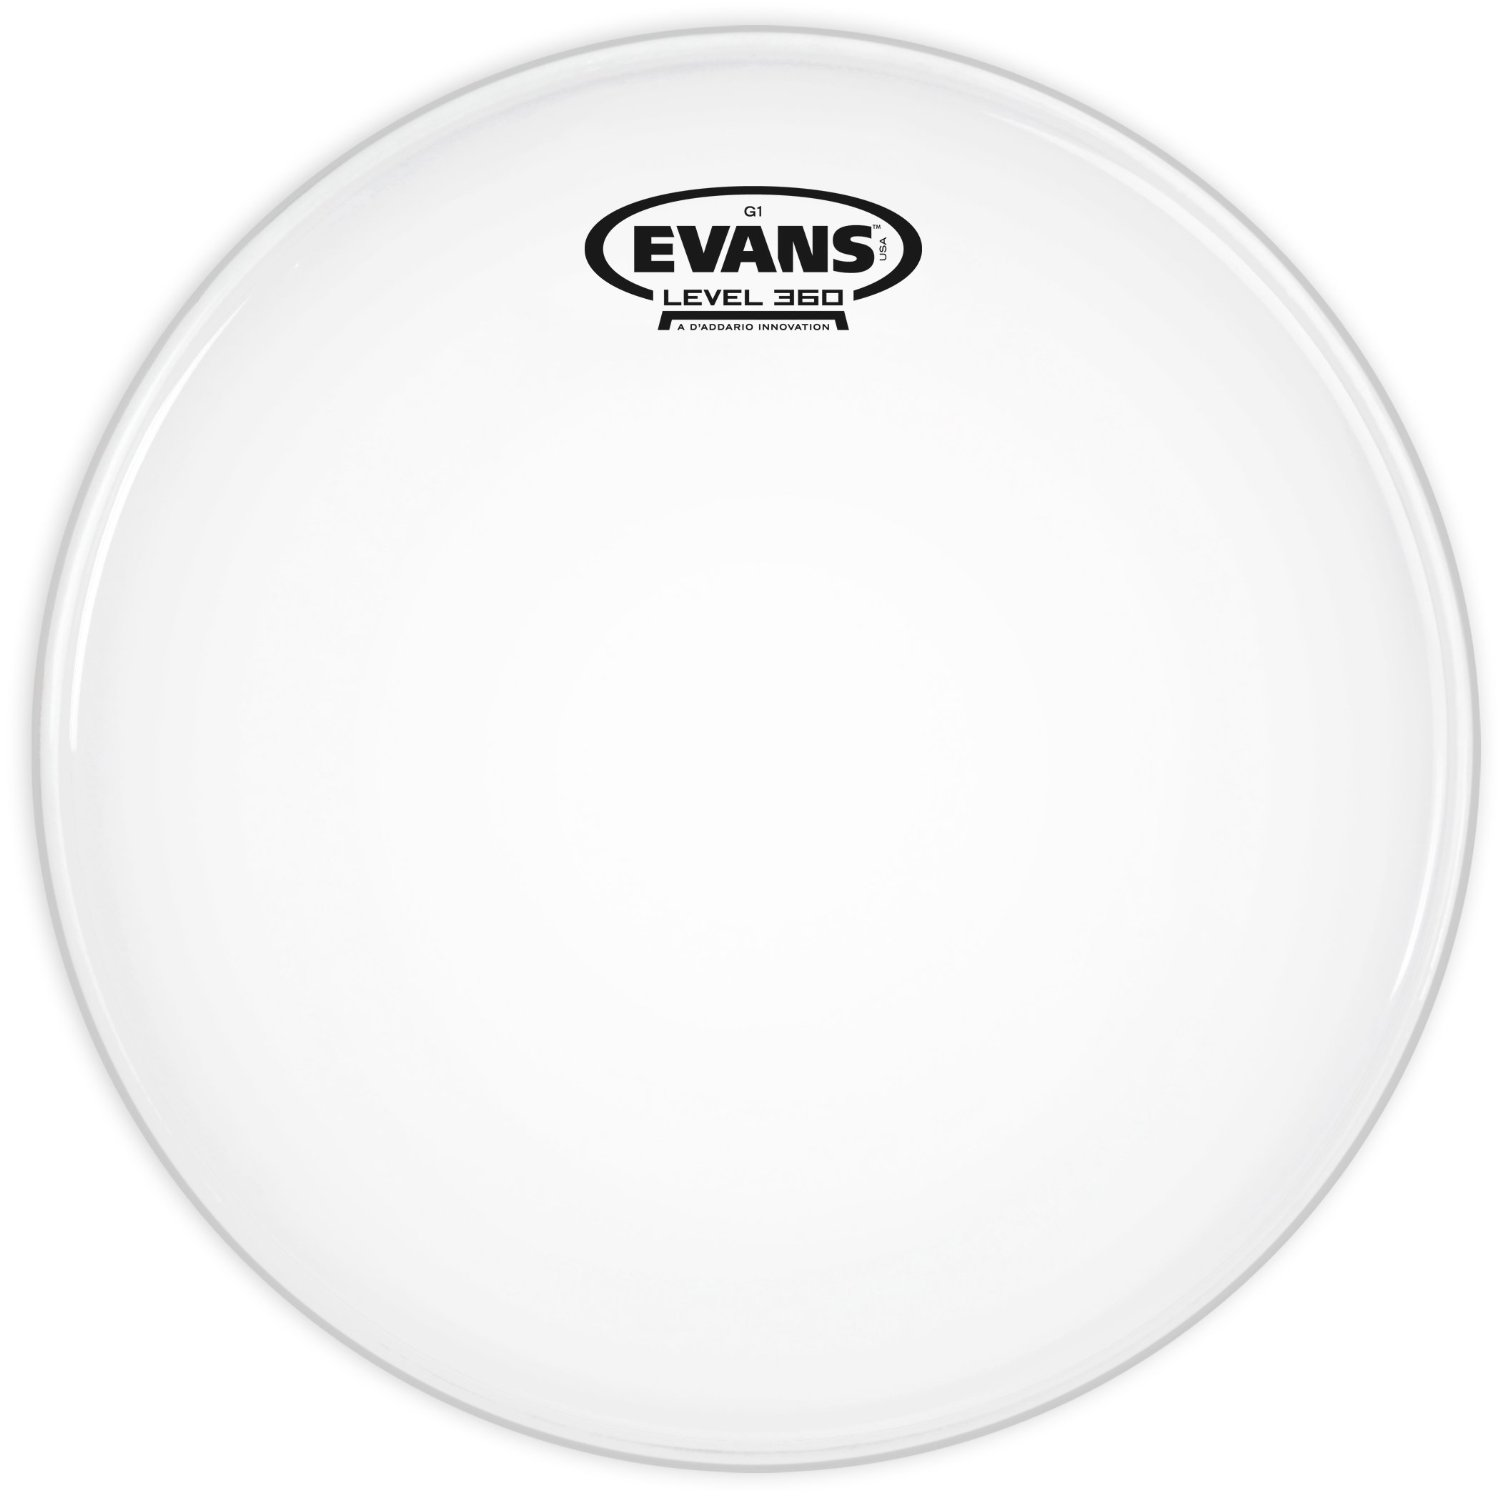 Evans Drumhead Genera G1 Single Ply Coated 16 Inches